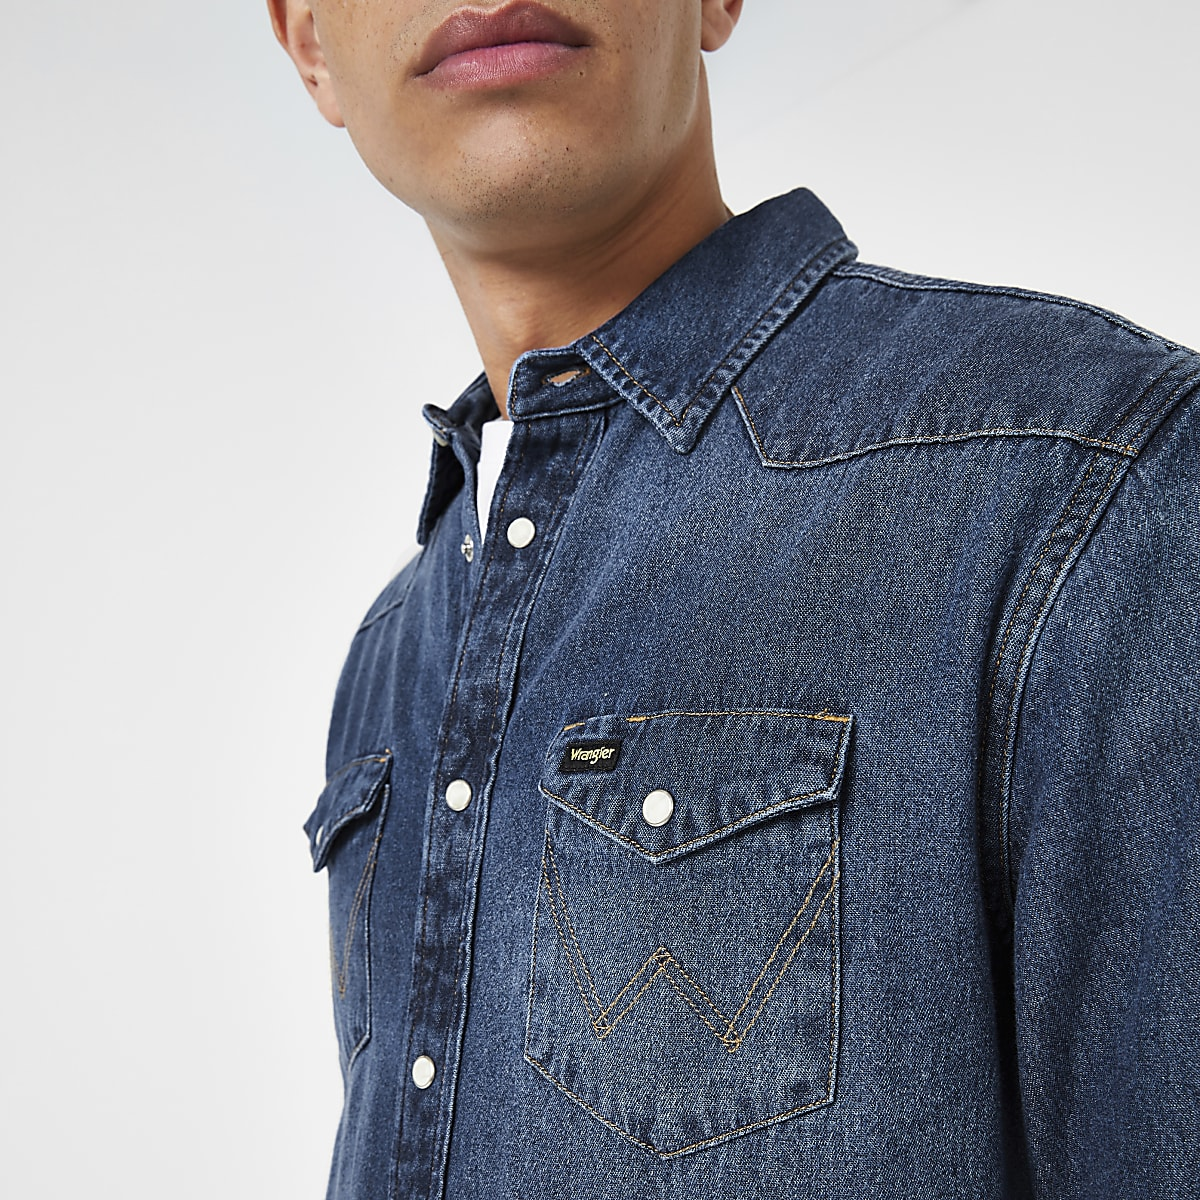 Wrangler blue western denim shirt